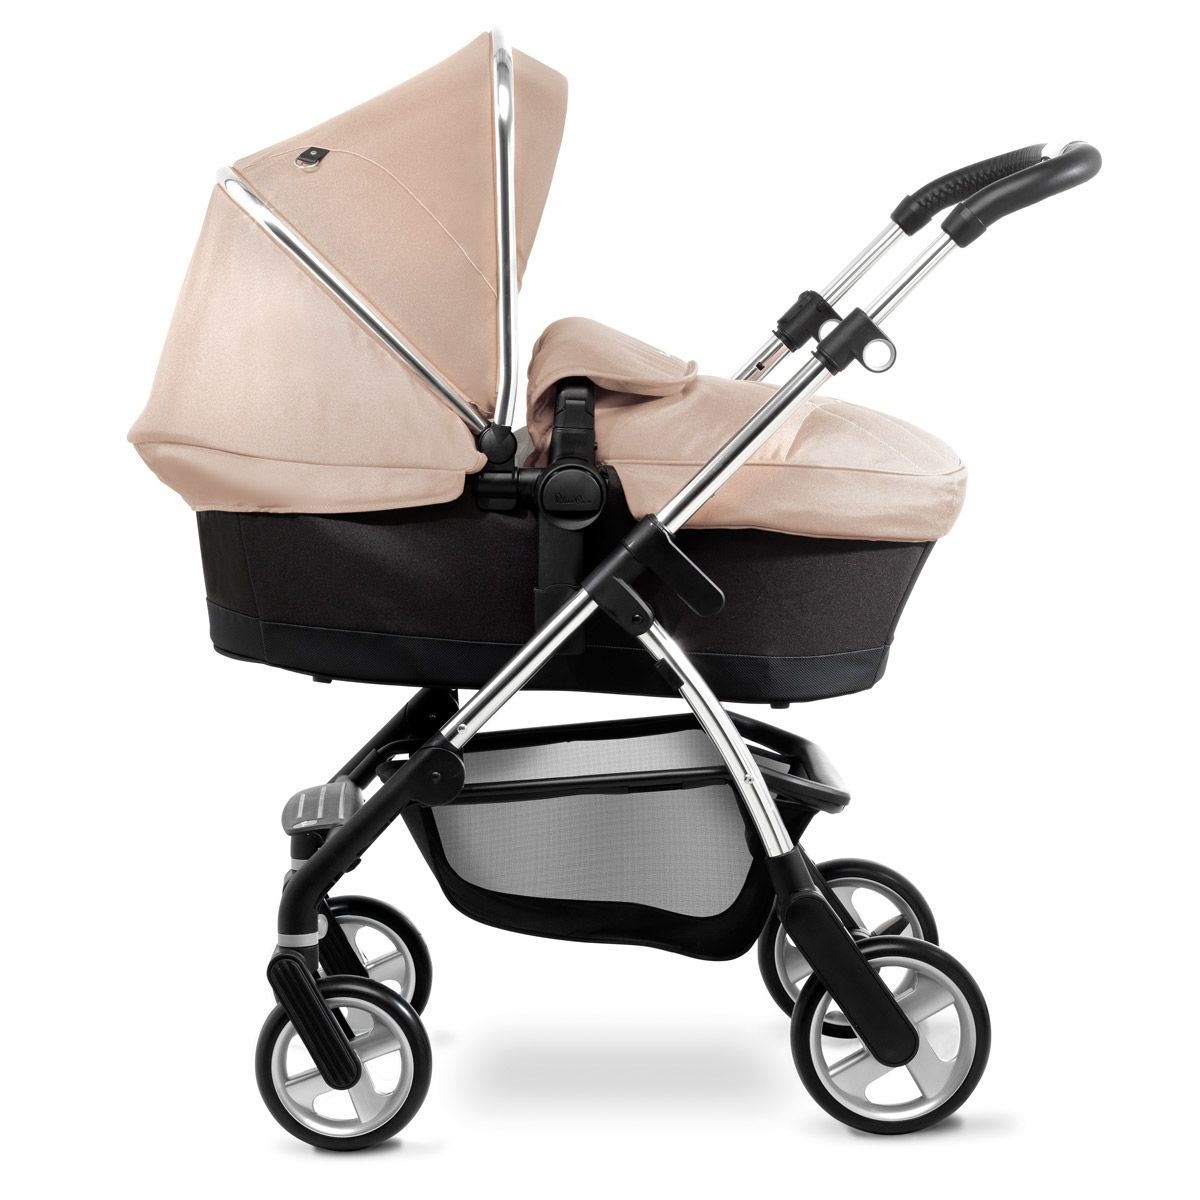 The Silver Cross Wayfarer Pram System In Carrycot Mode